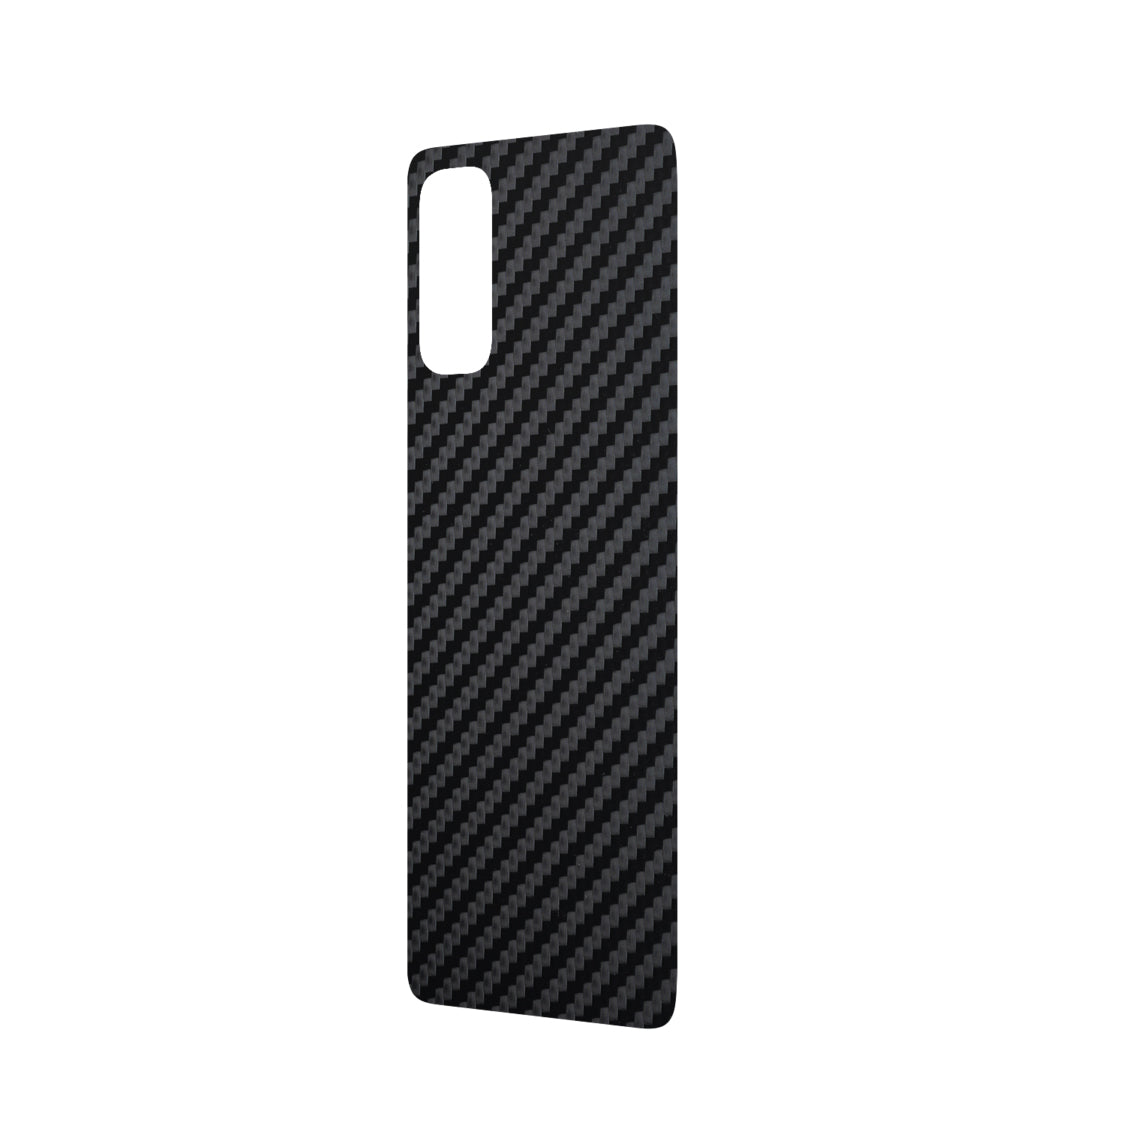 RhinoShield Impact Skin For Samsung S20 - Carbon Fiber - Macintosh Addict